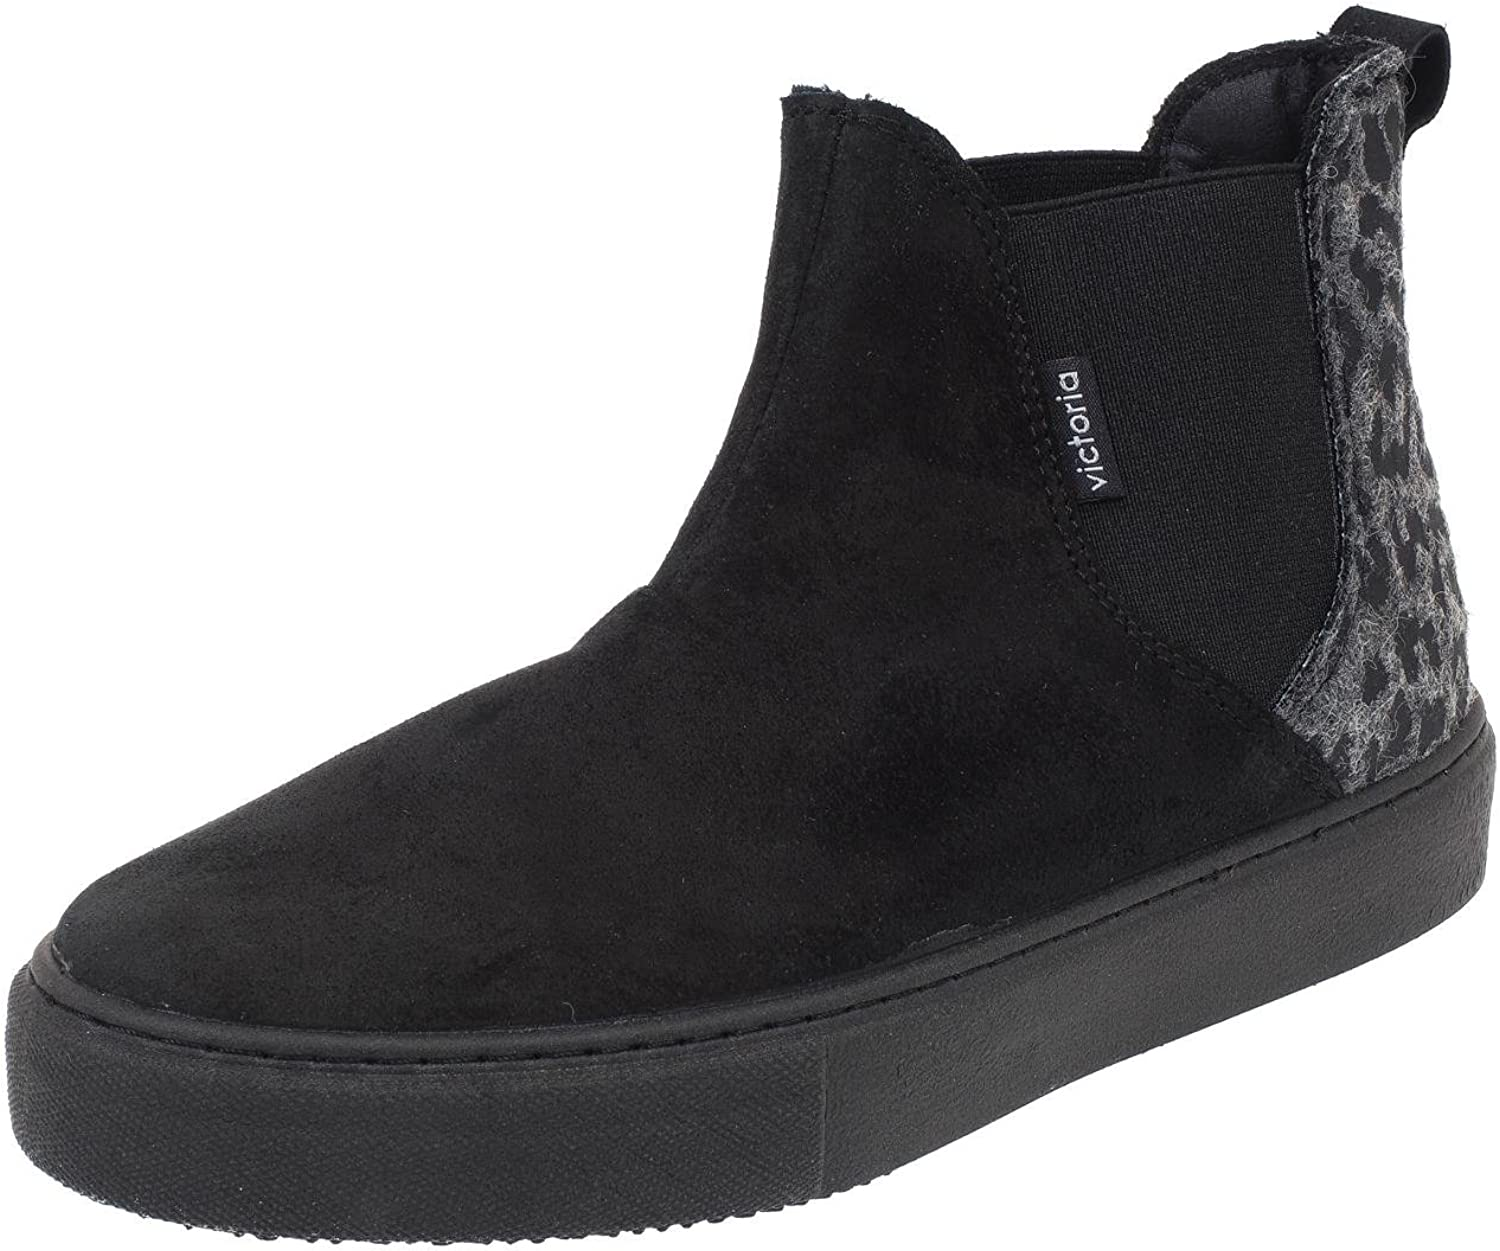 Victoria Unisex Adults' 125046 Chelsea Boots